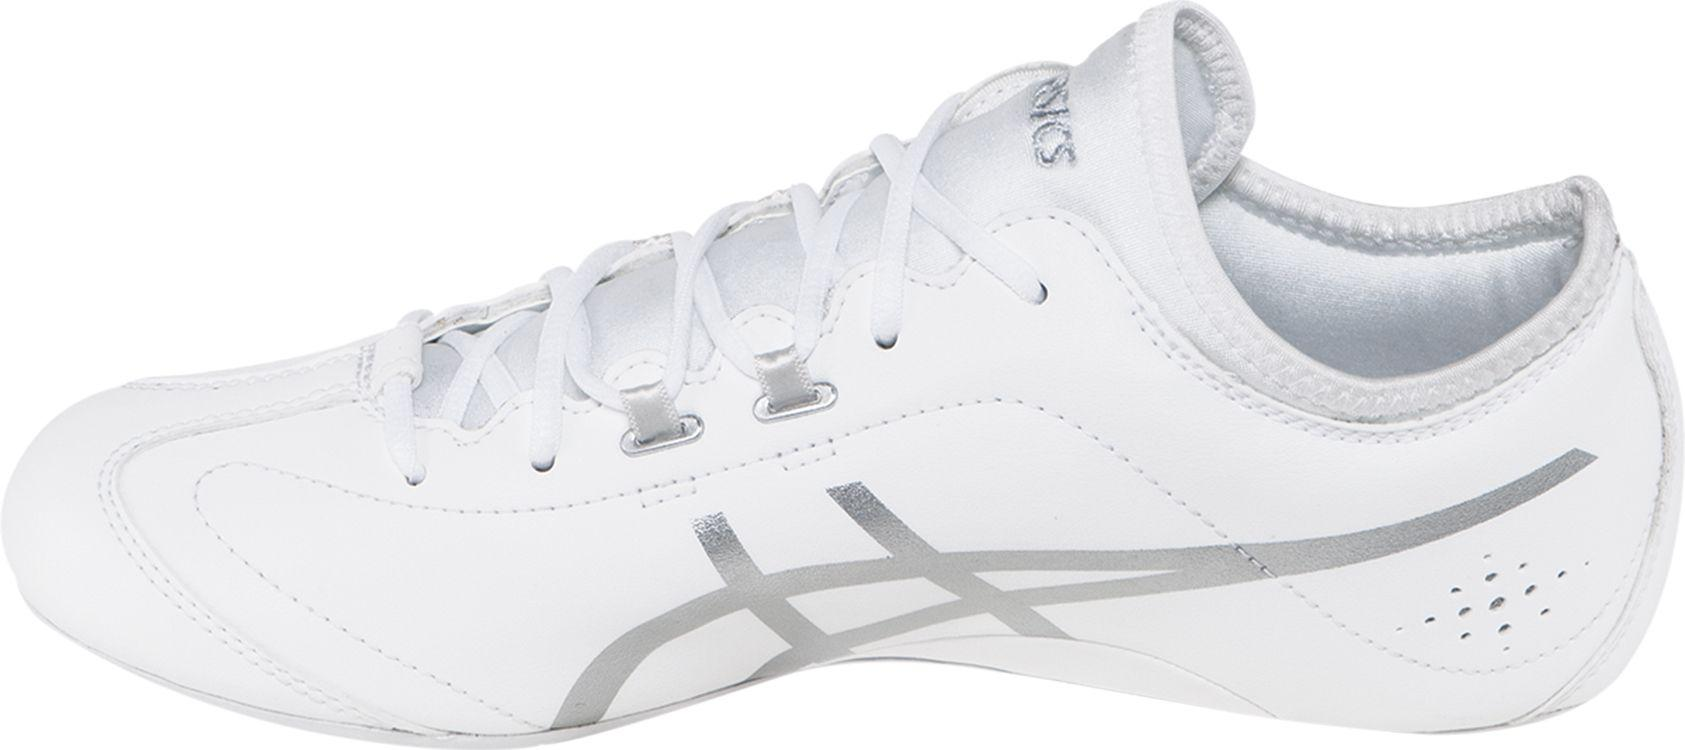 Asics Leather Flip'n Fly Cheer Shoe in